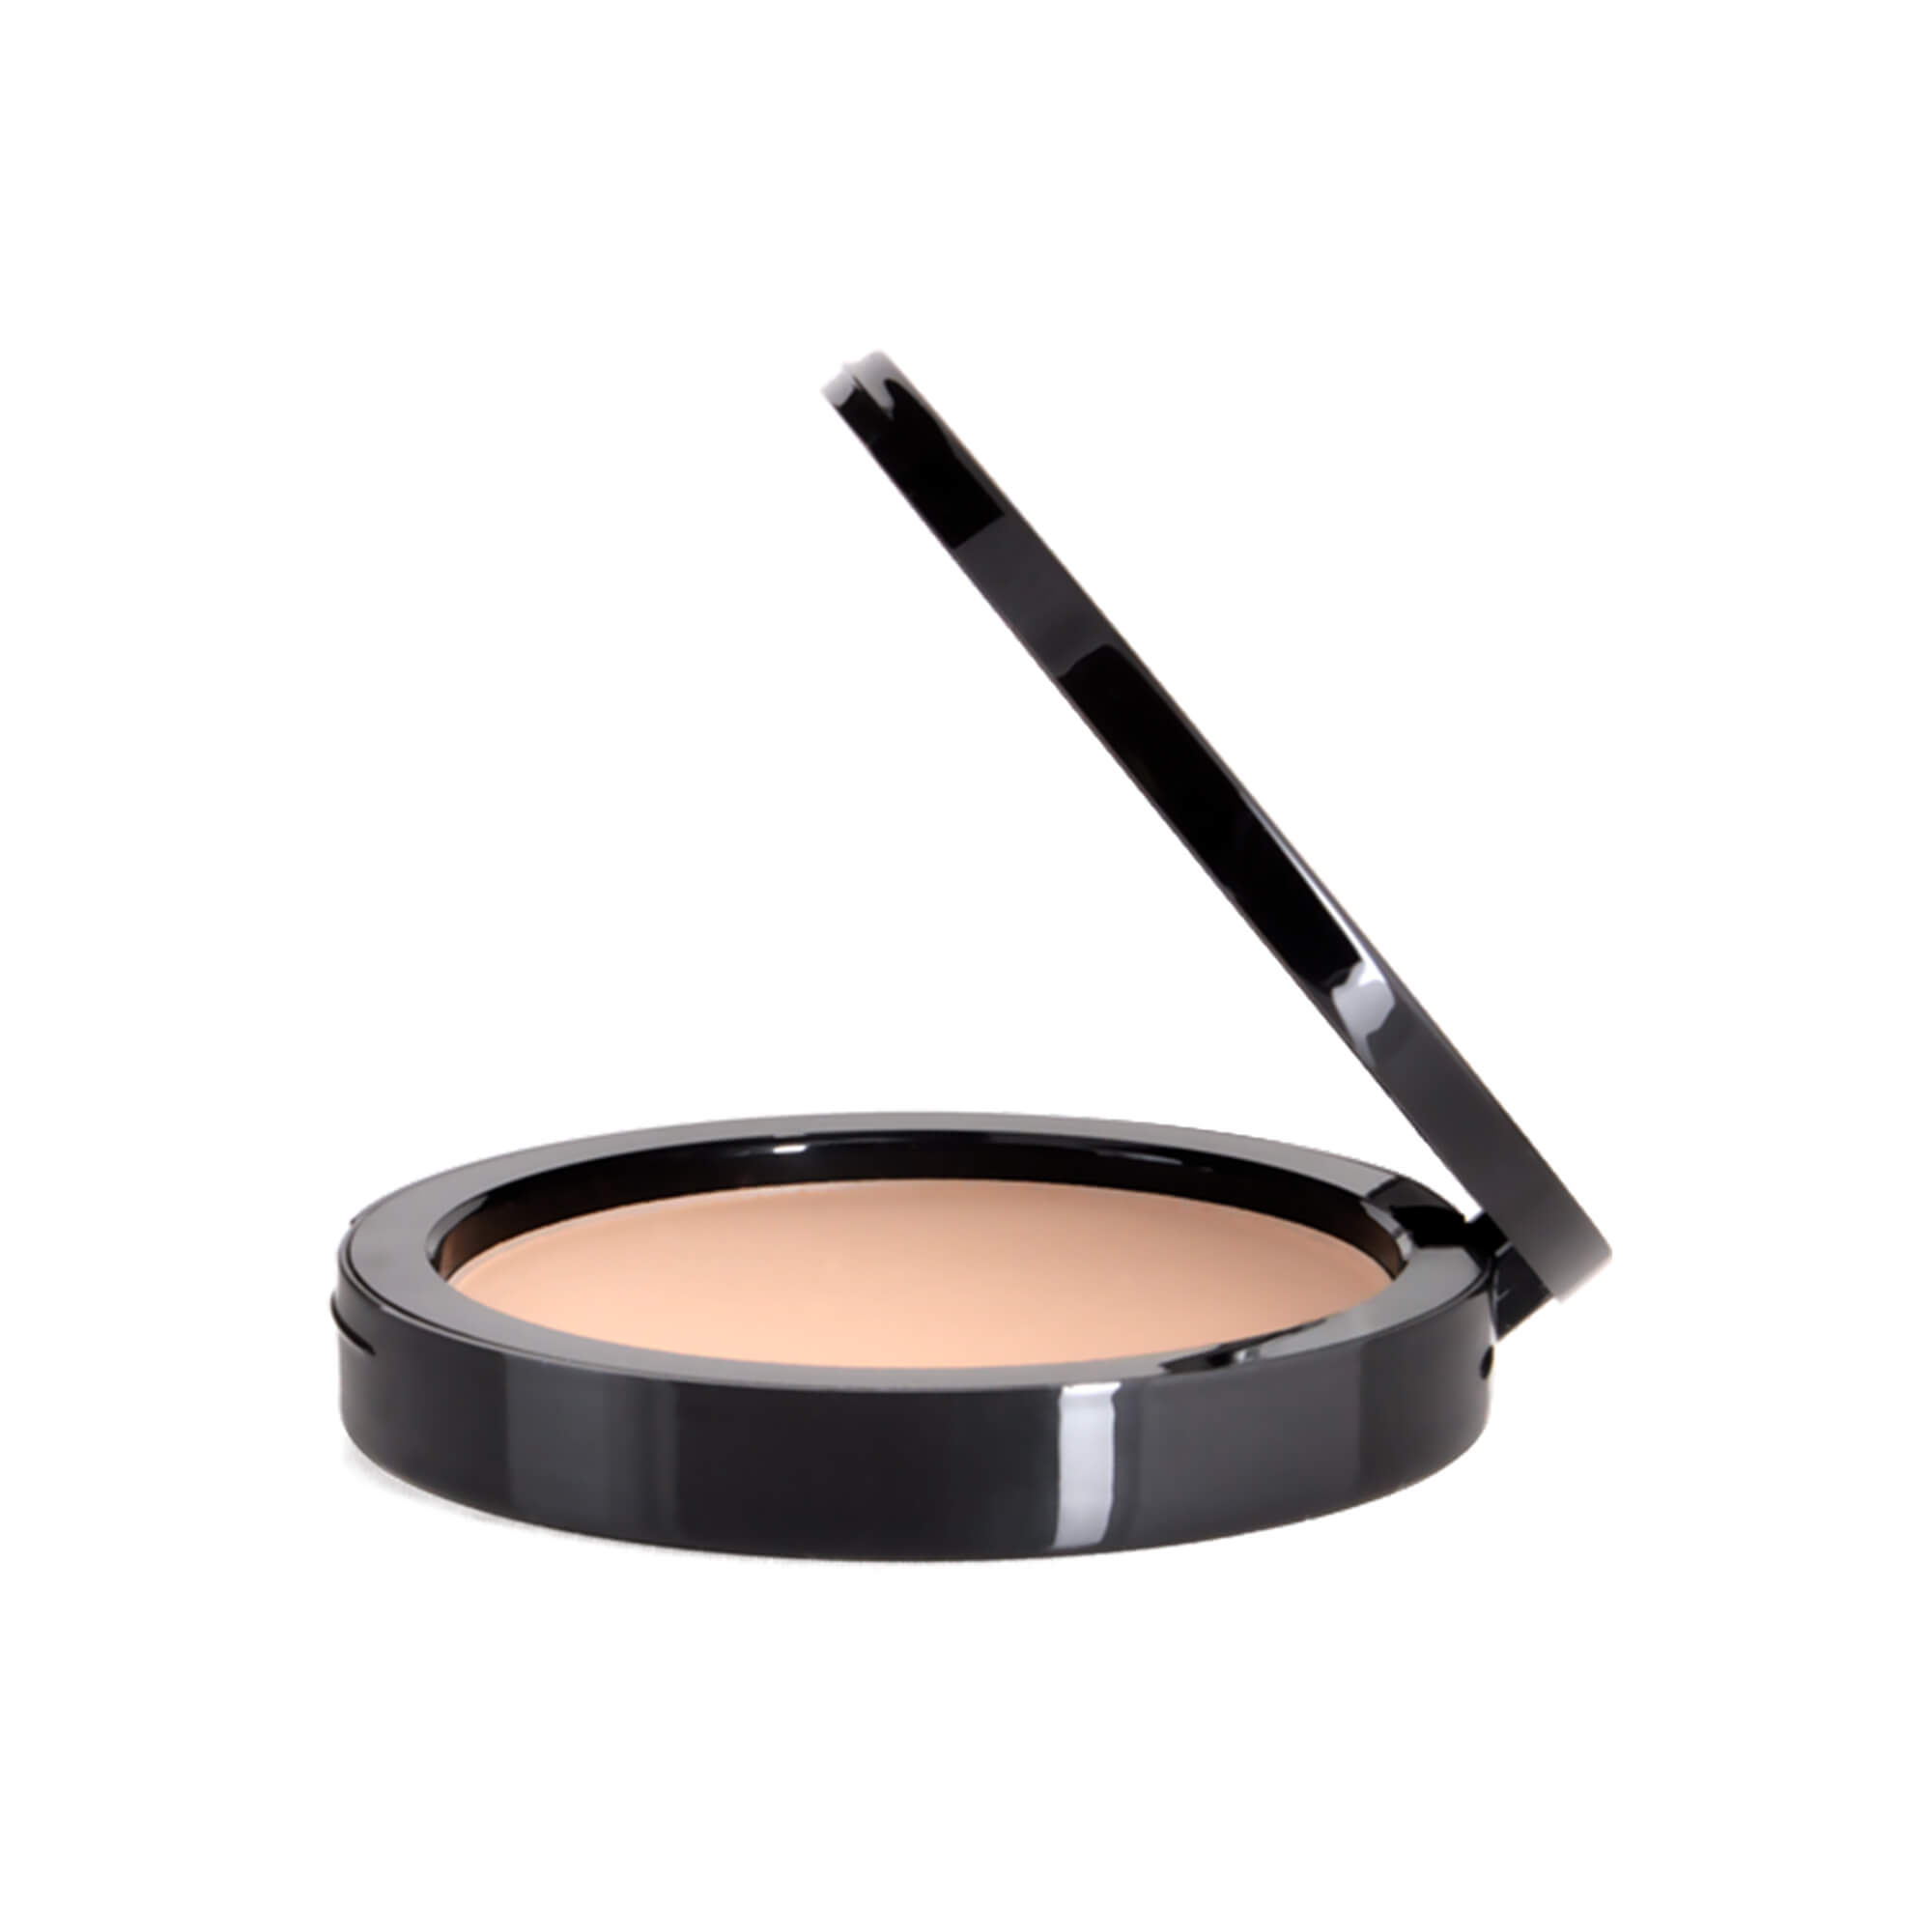 Candlelight compact foundation